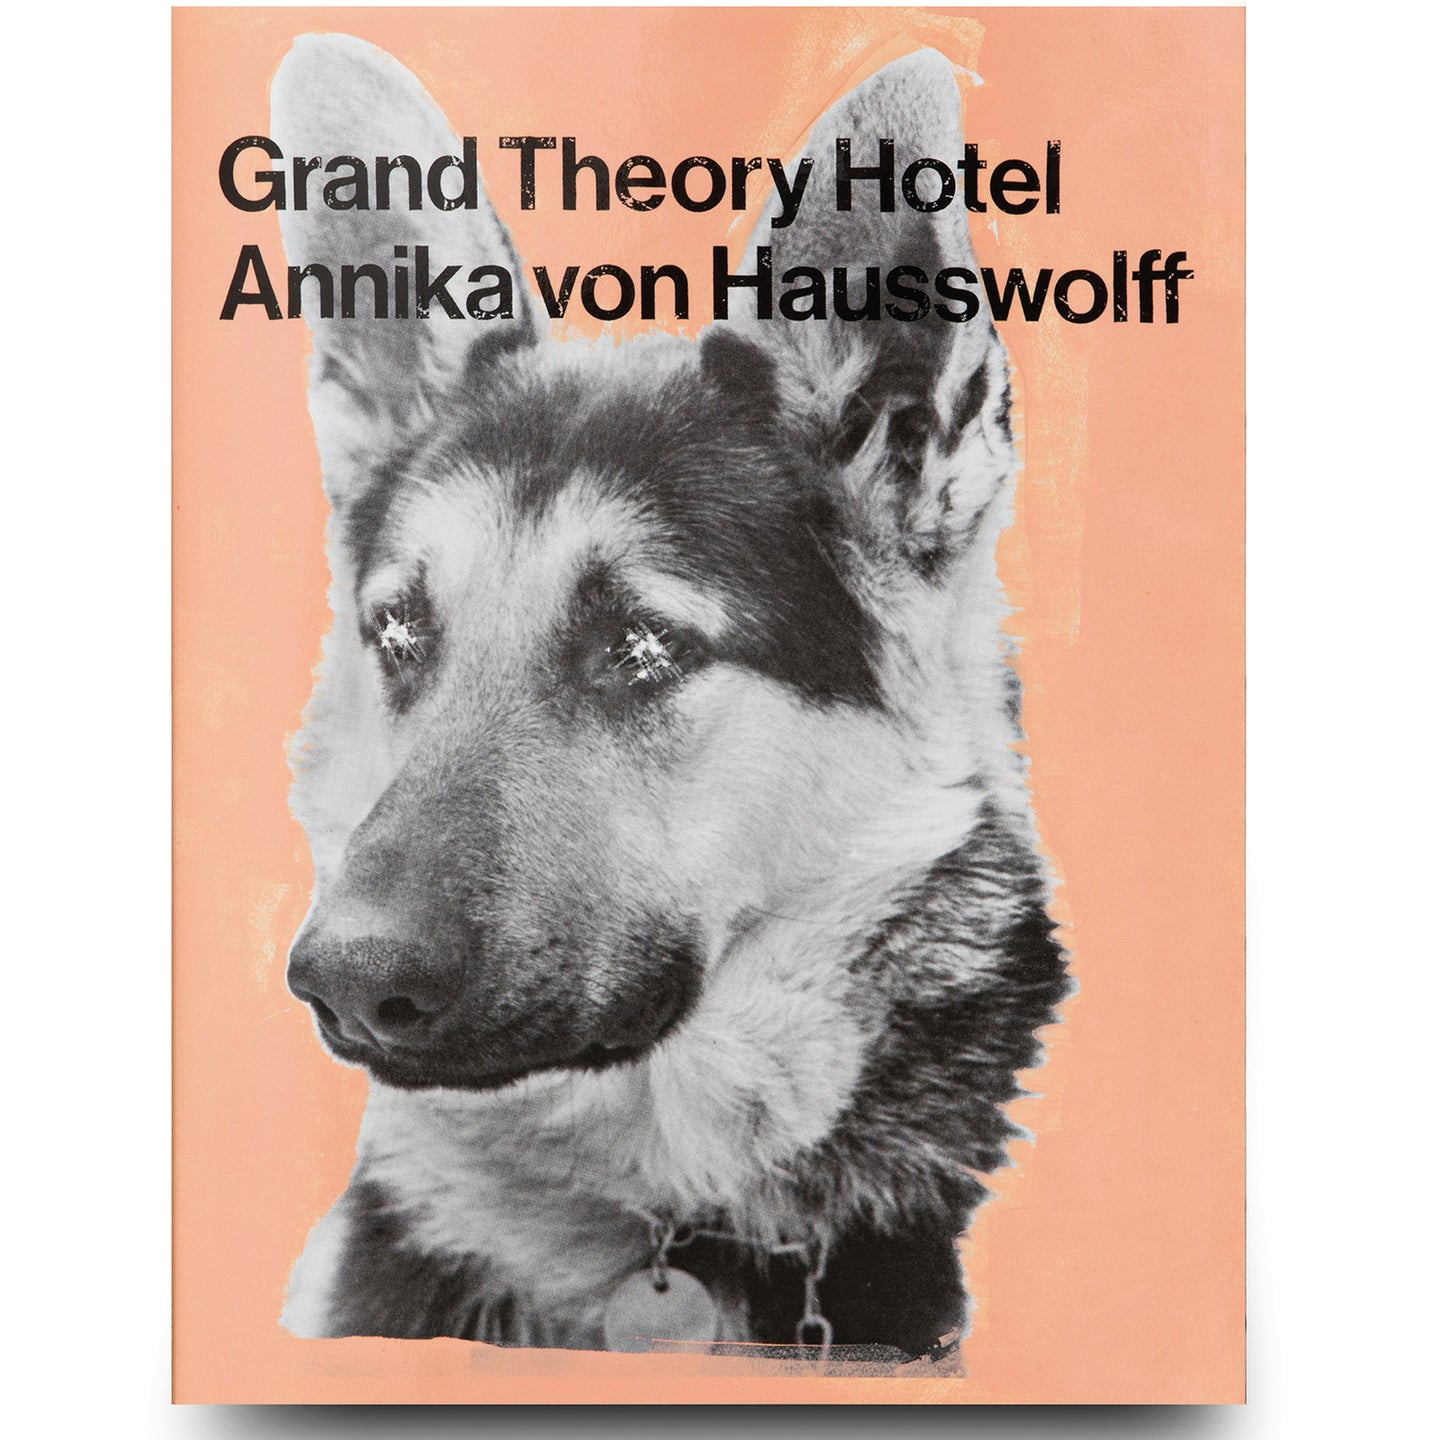 ANNIKA VON HAUSSWOLFF: GRAND THEORY HOTEL